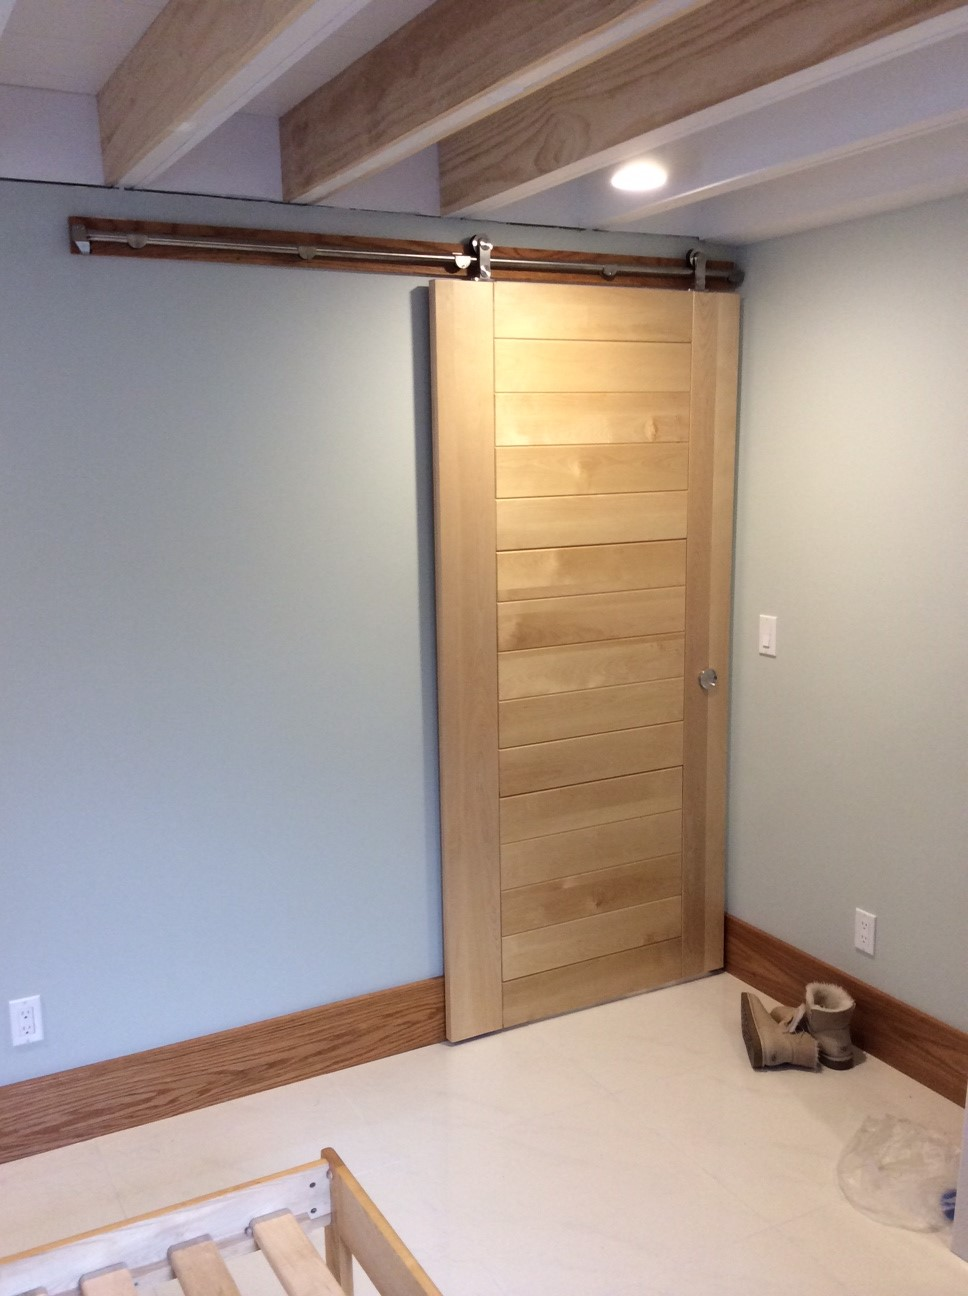 Circa - WT Series, Wood Door System